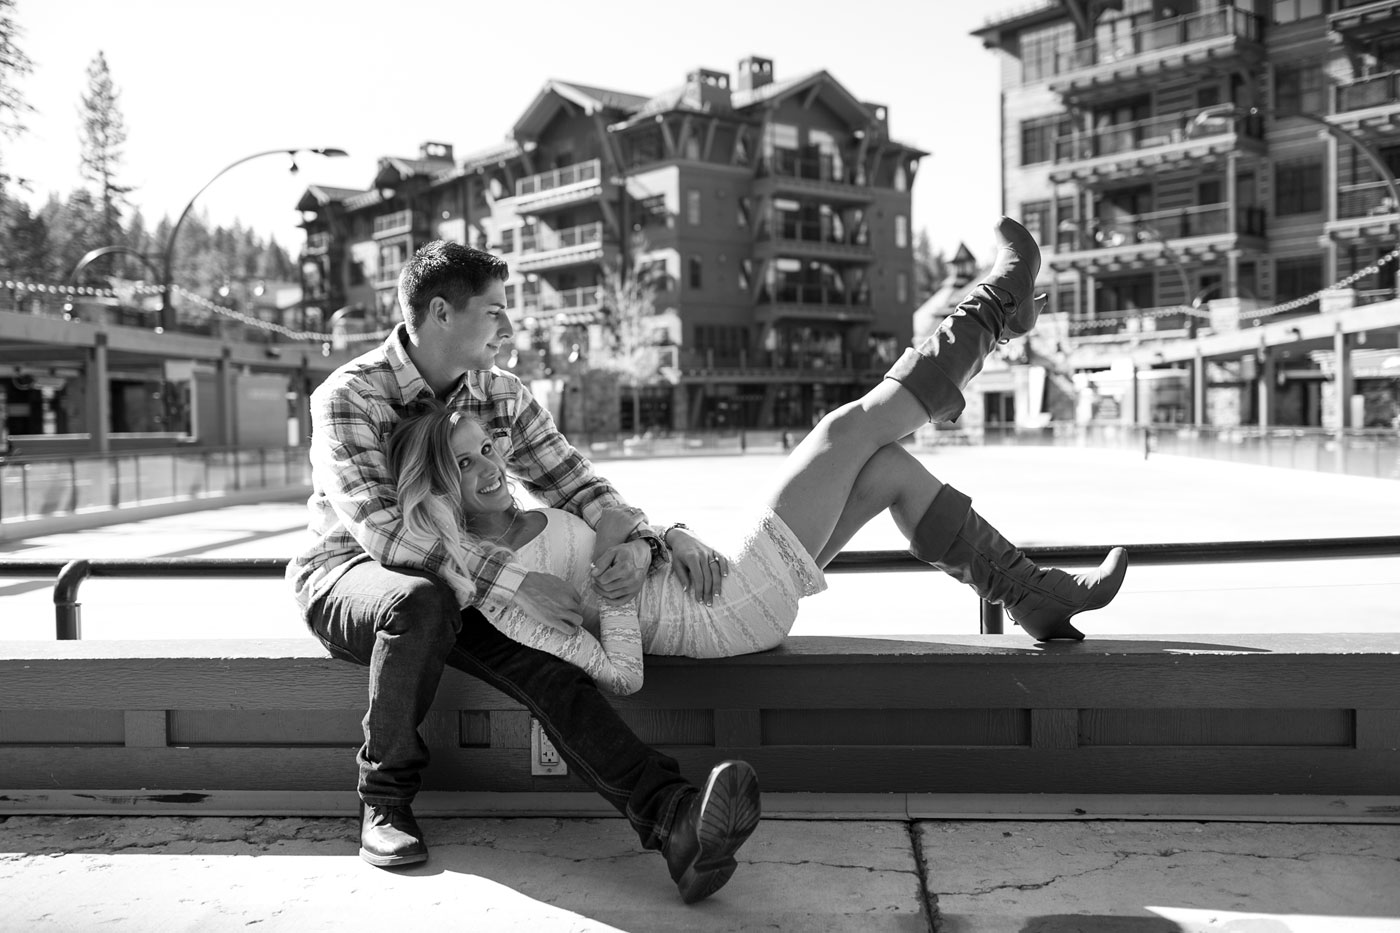 Northstar-engagement-photography